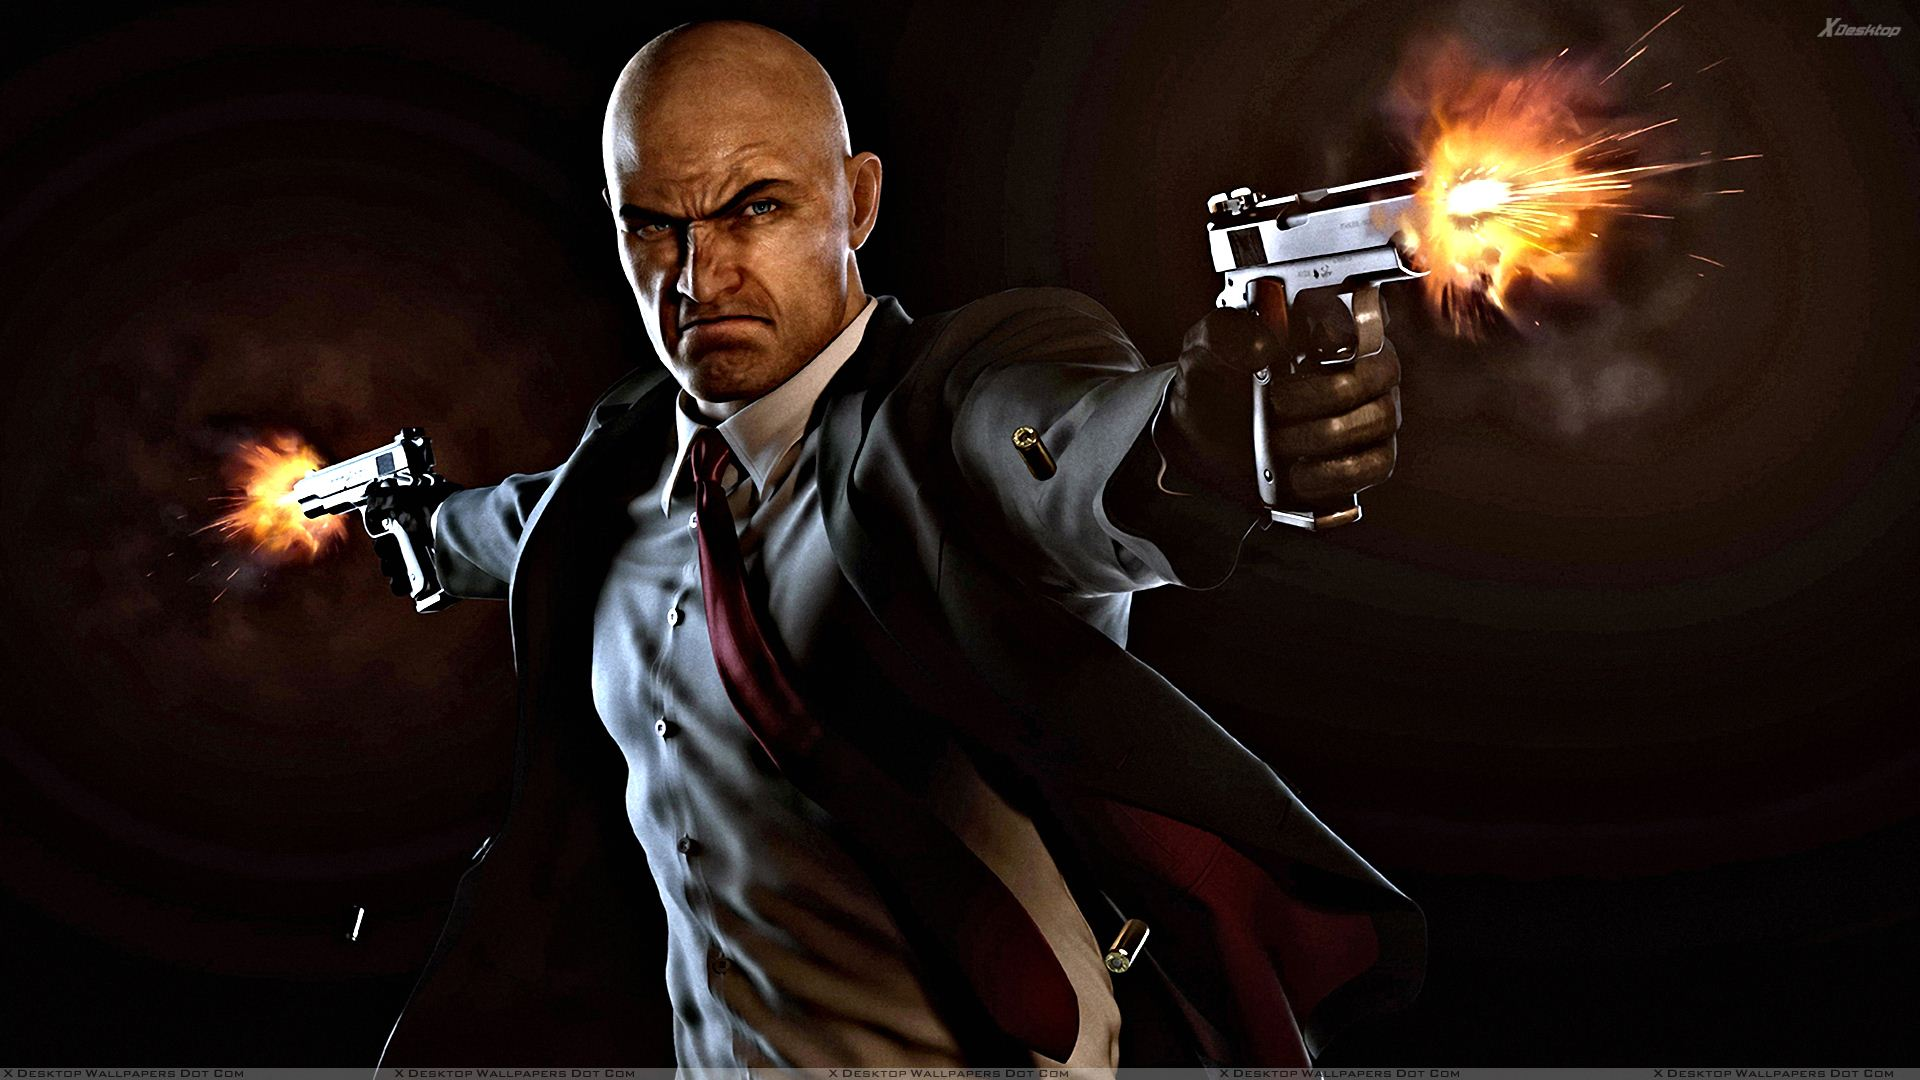 Hitman E3 2015 Announcement